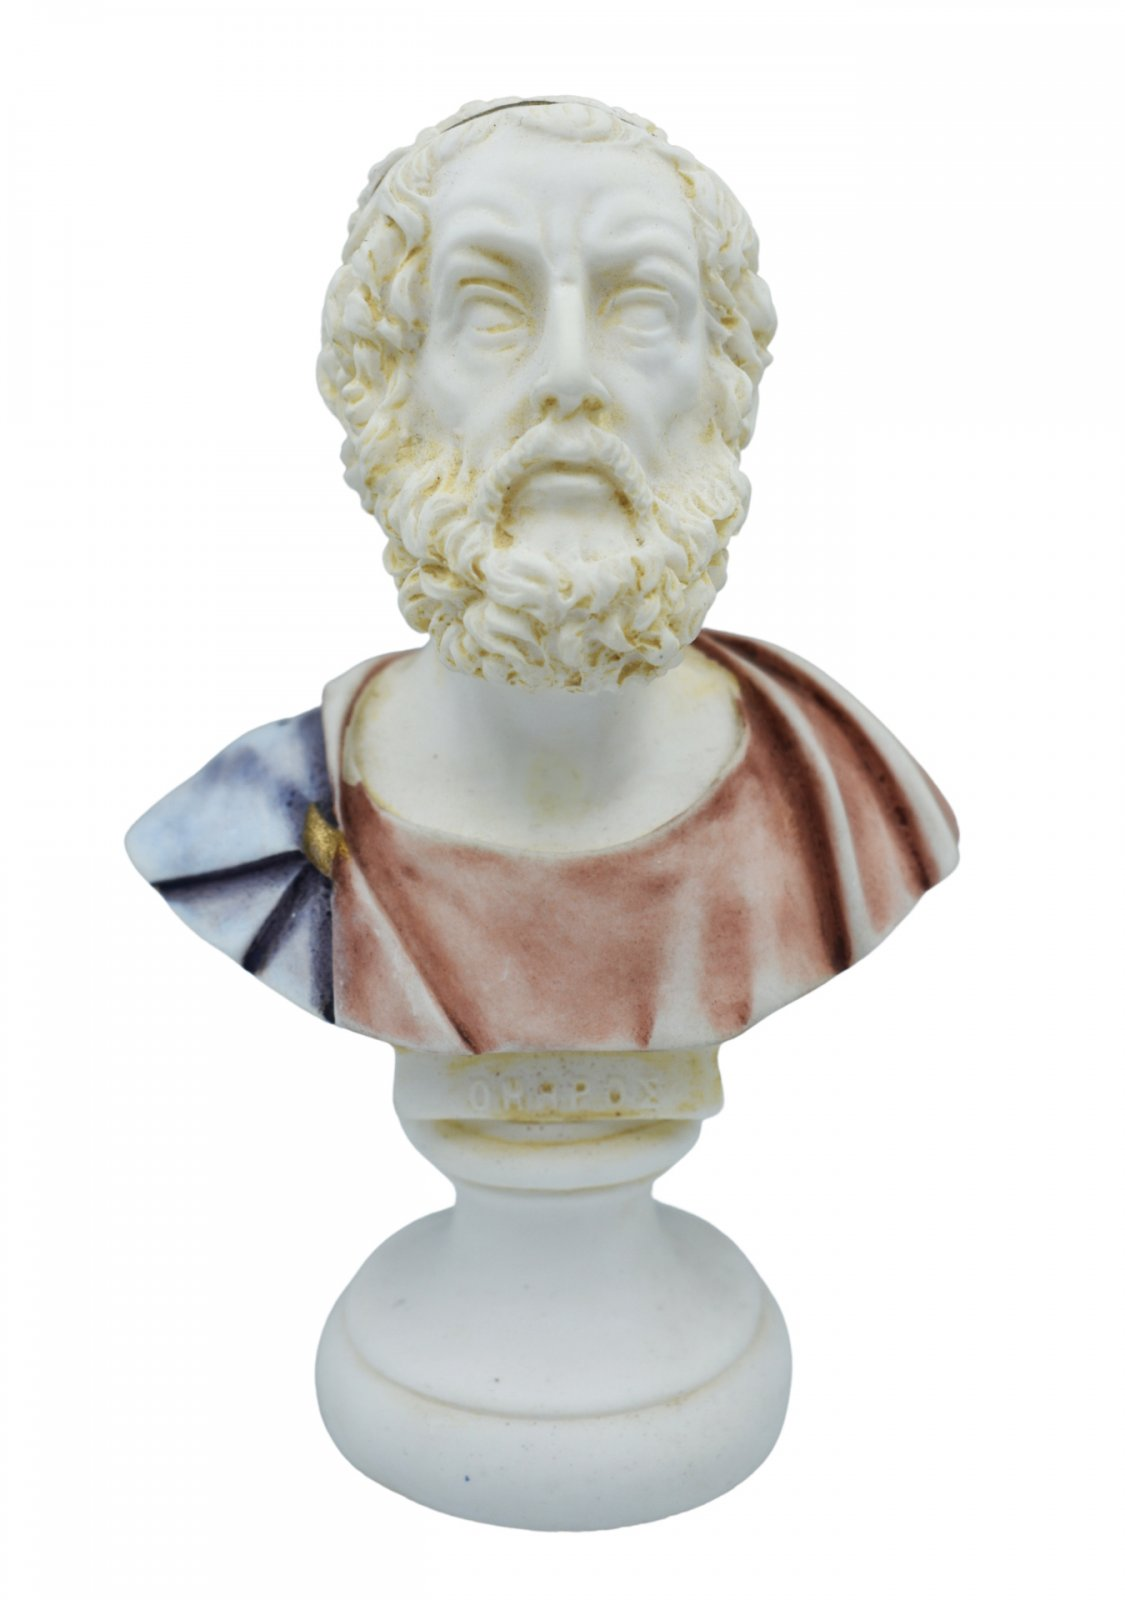 Homer alabaster bust statue with color